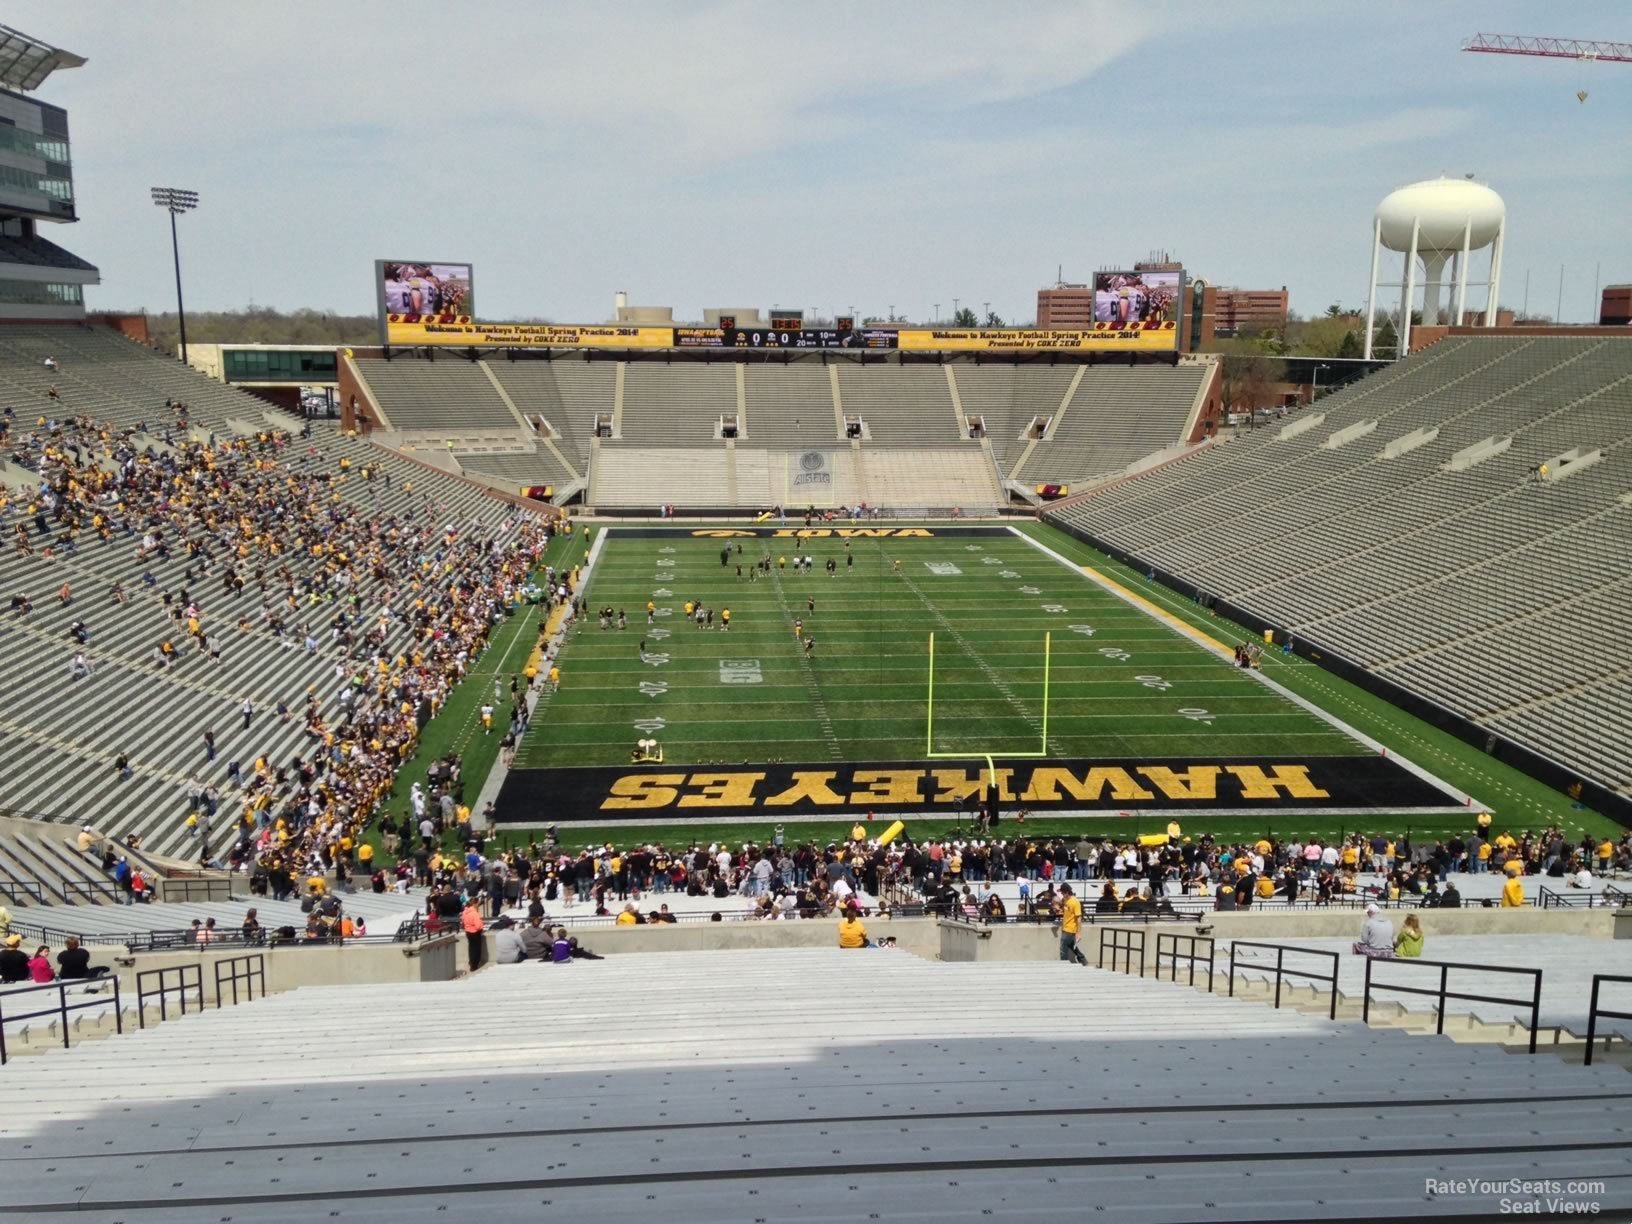 Section 217 seat view